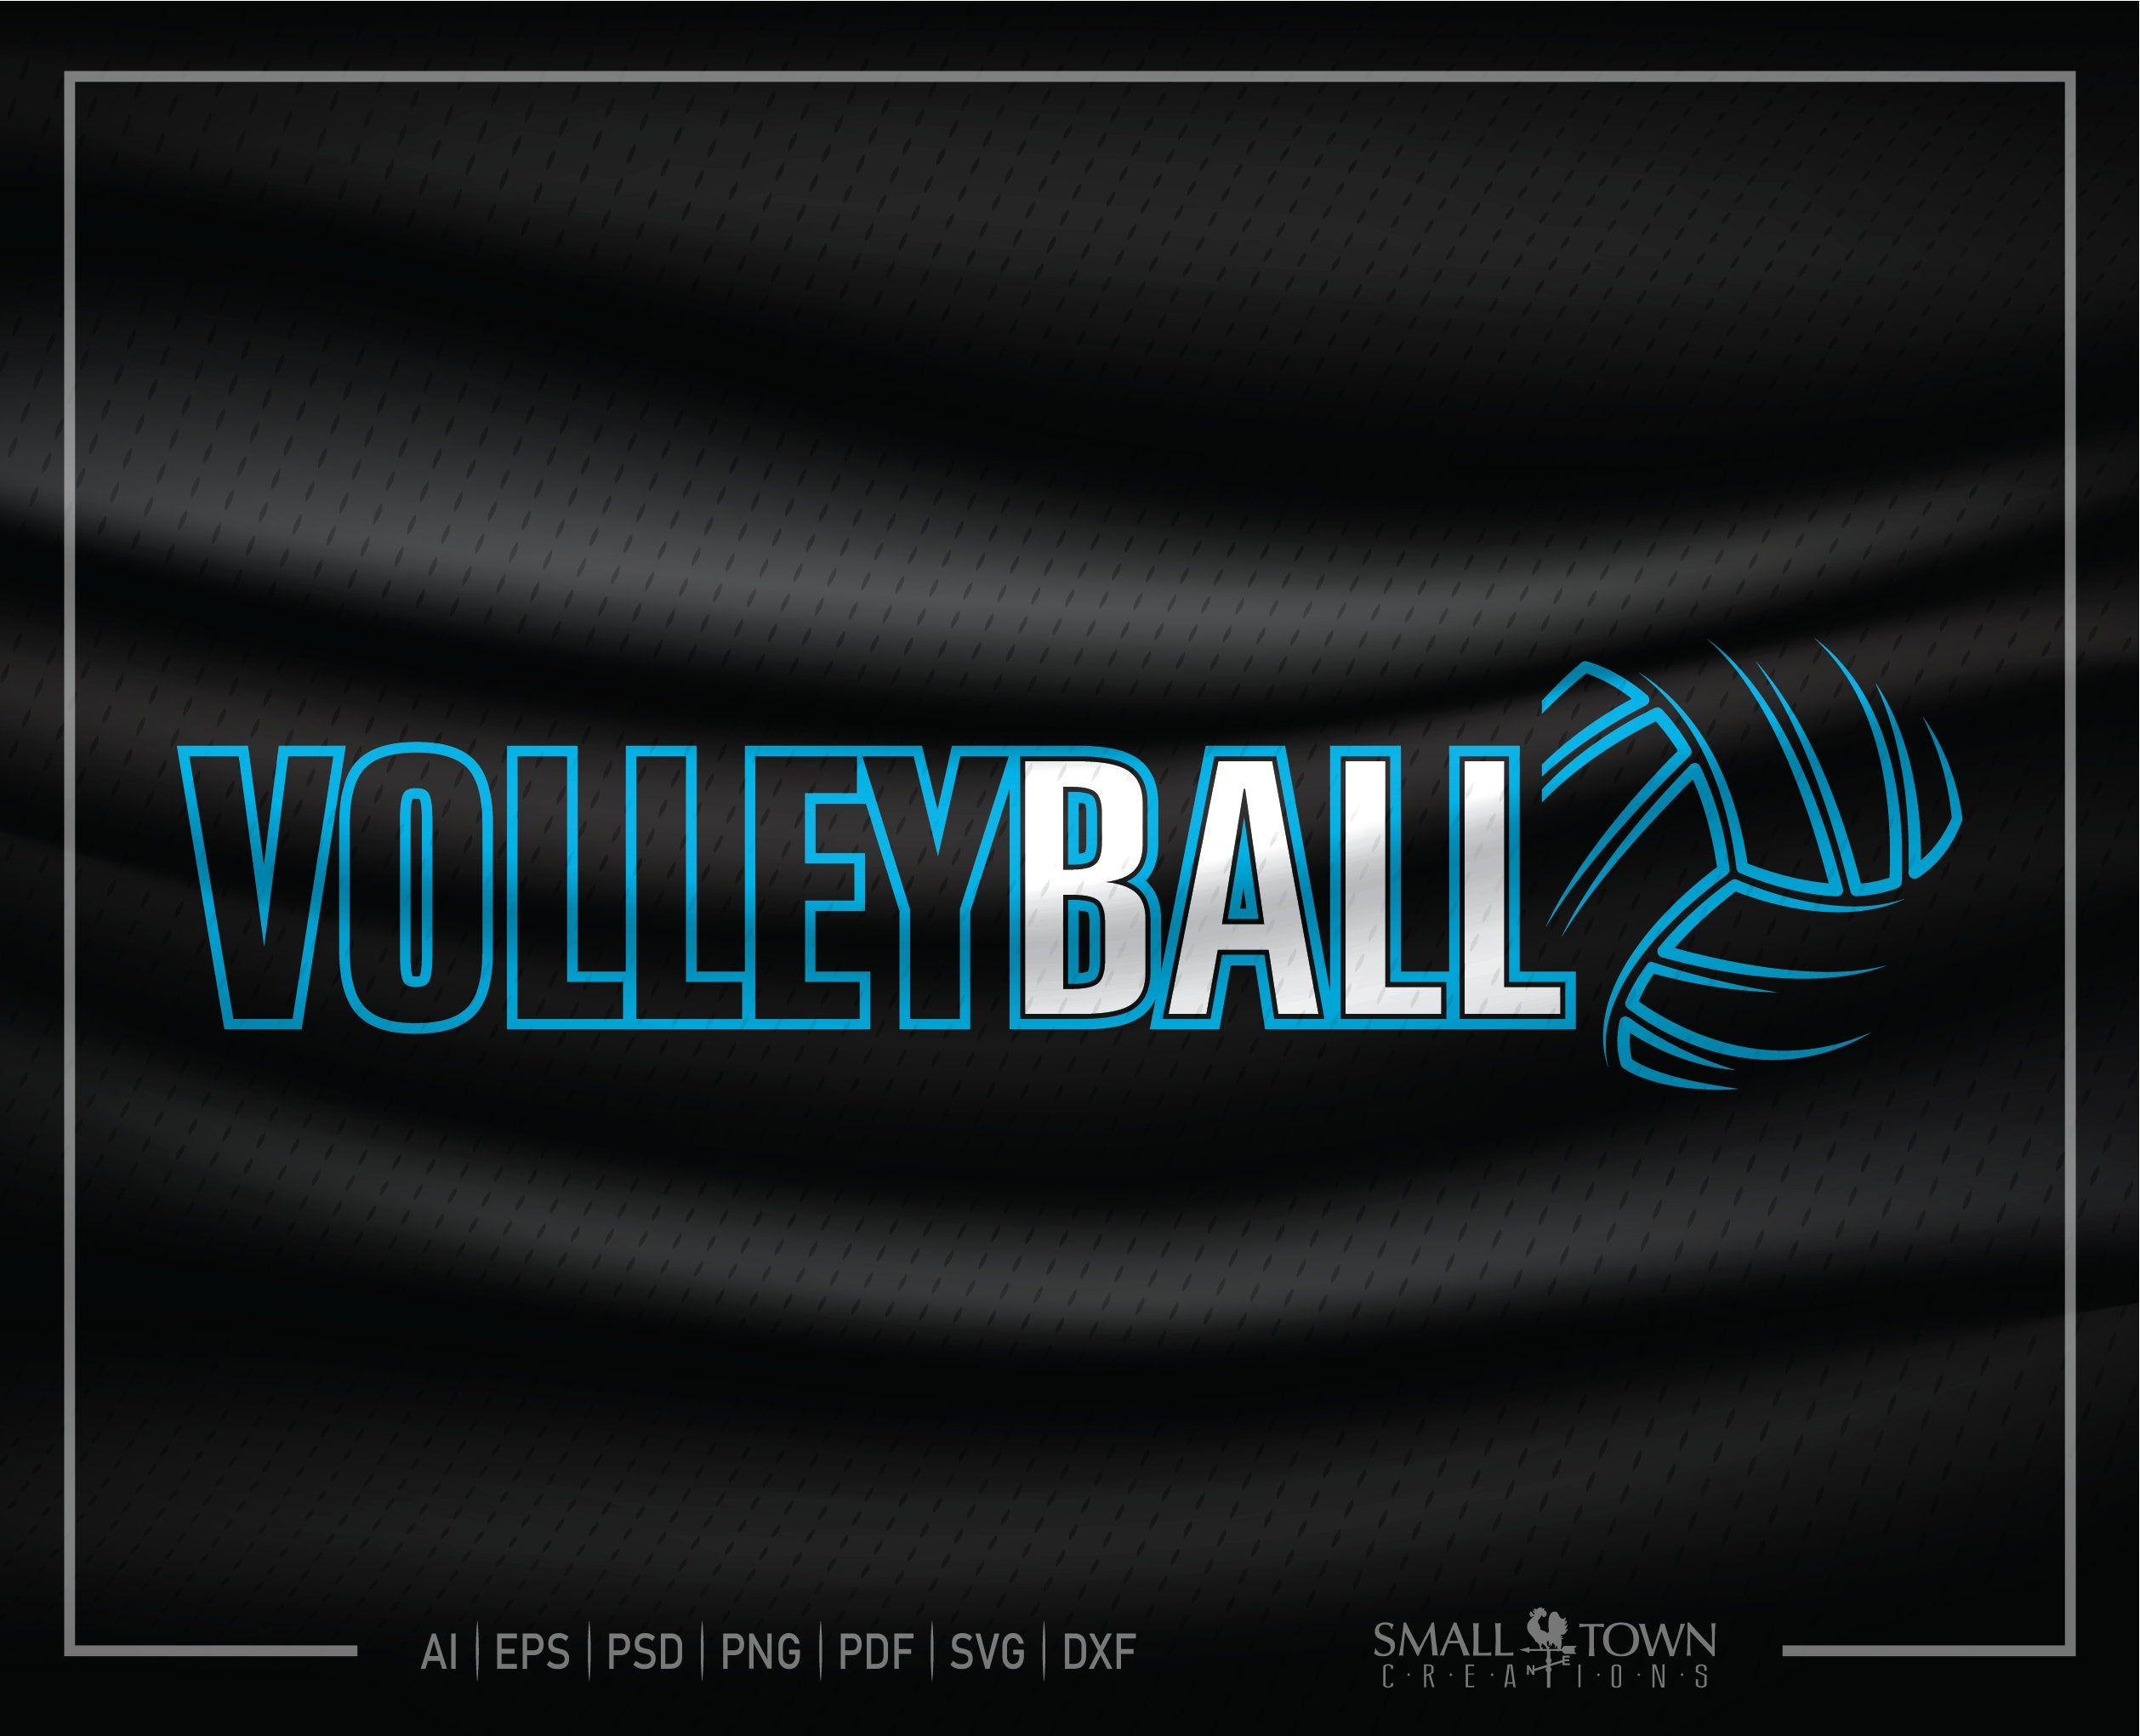 Volleyball Love Volleyball Team Logo Sports Ball Etsy In 2020 Volleyball How To Make Tshirts Team Logo